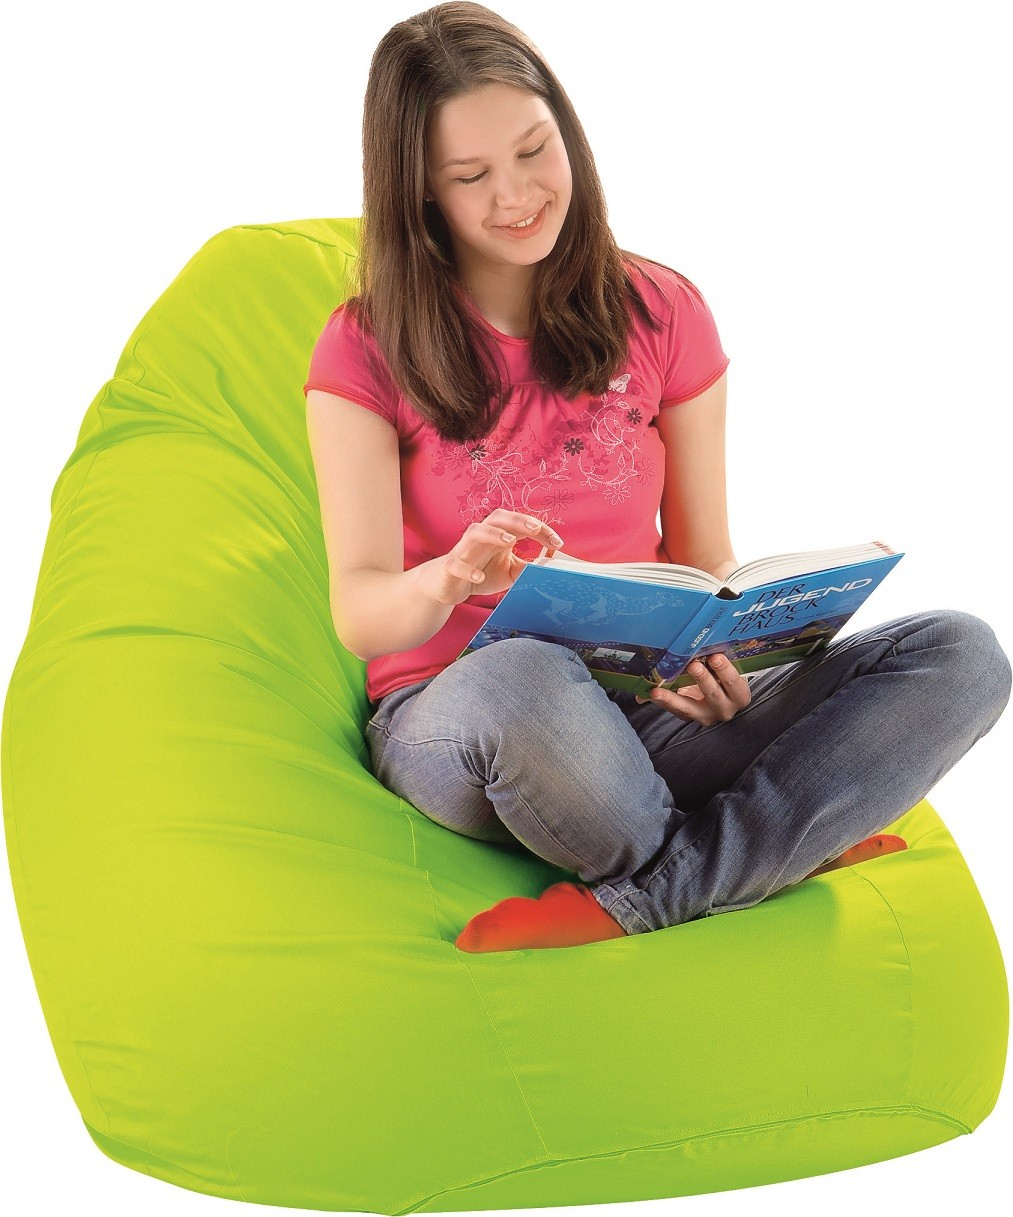 products furniture type casual young adult